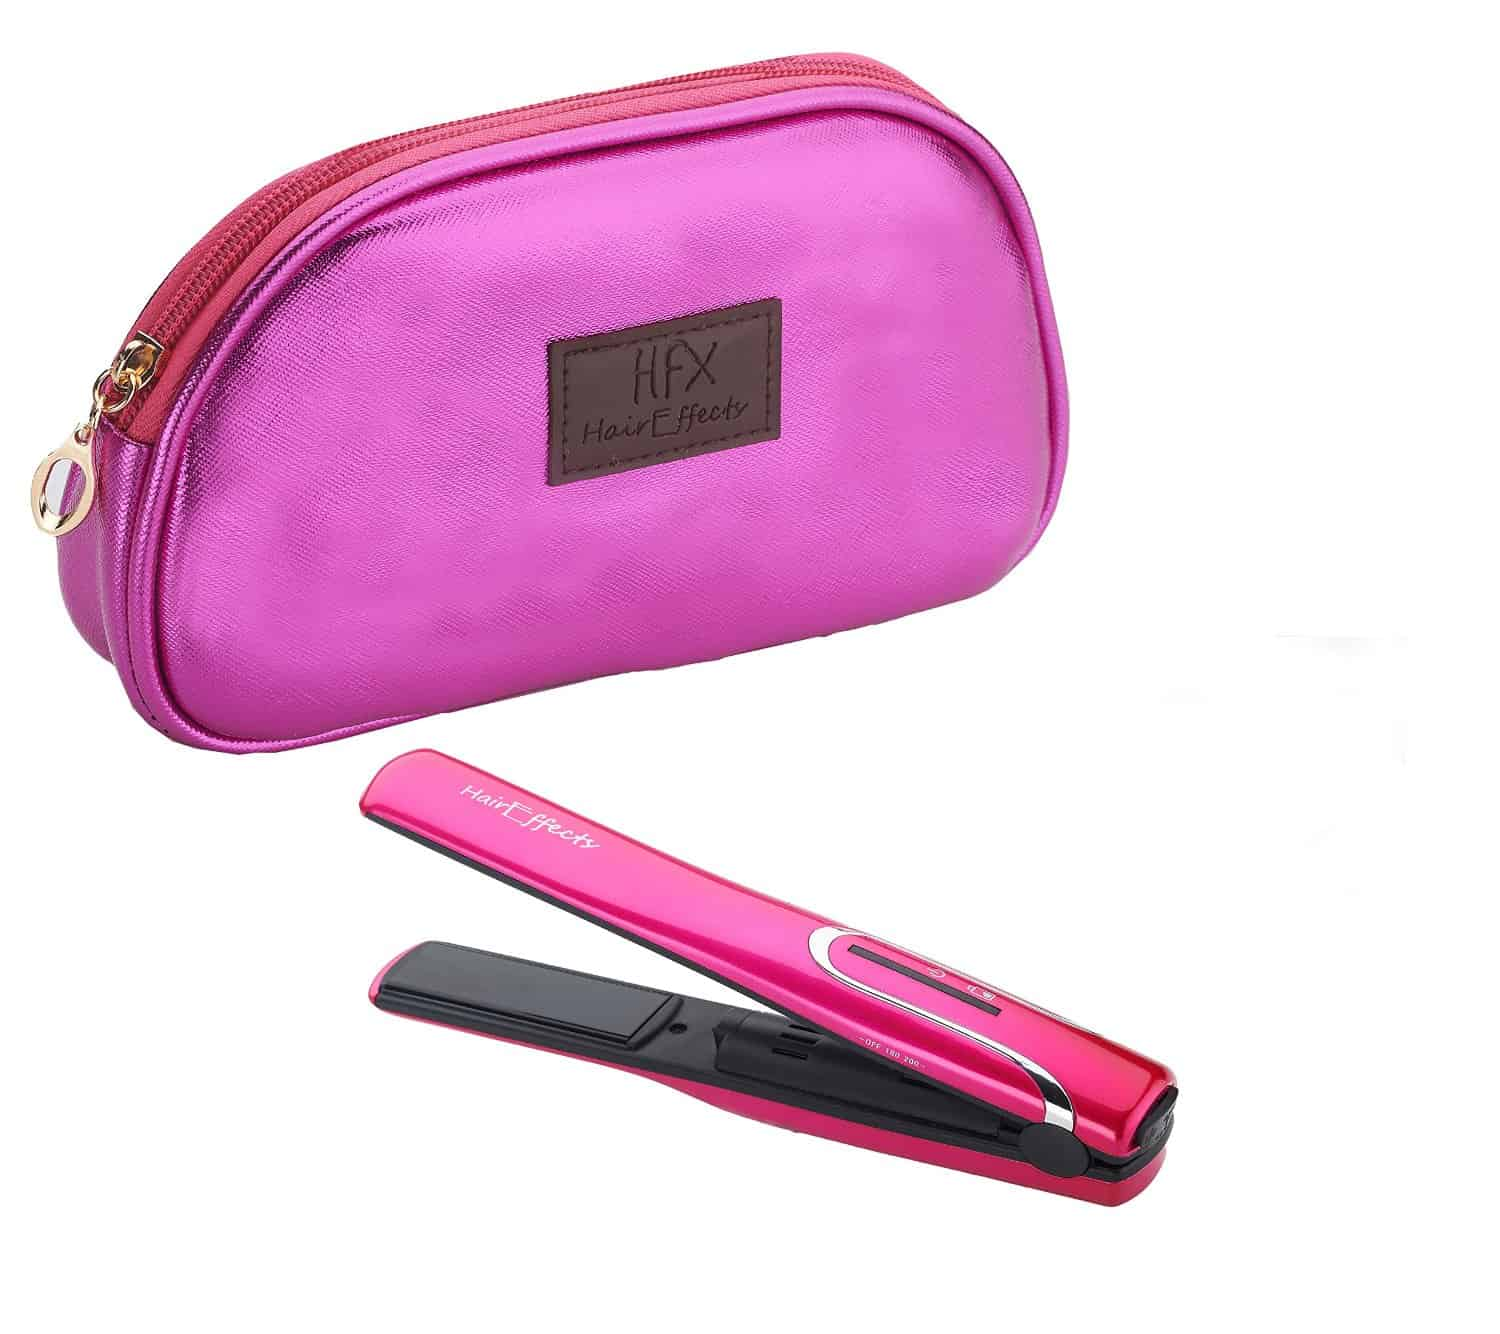 HFX Rechargeable USB Cordless Hair Straightener pouch